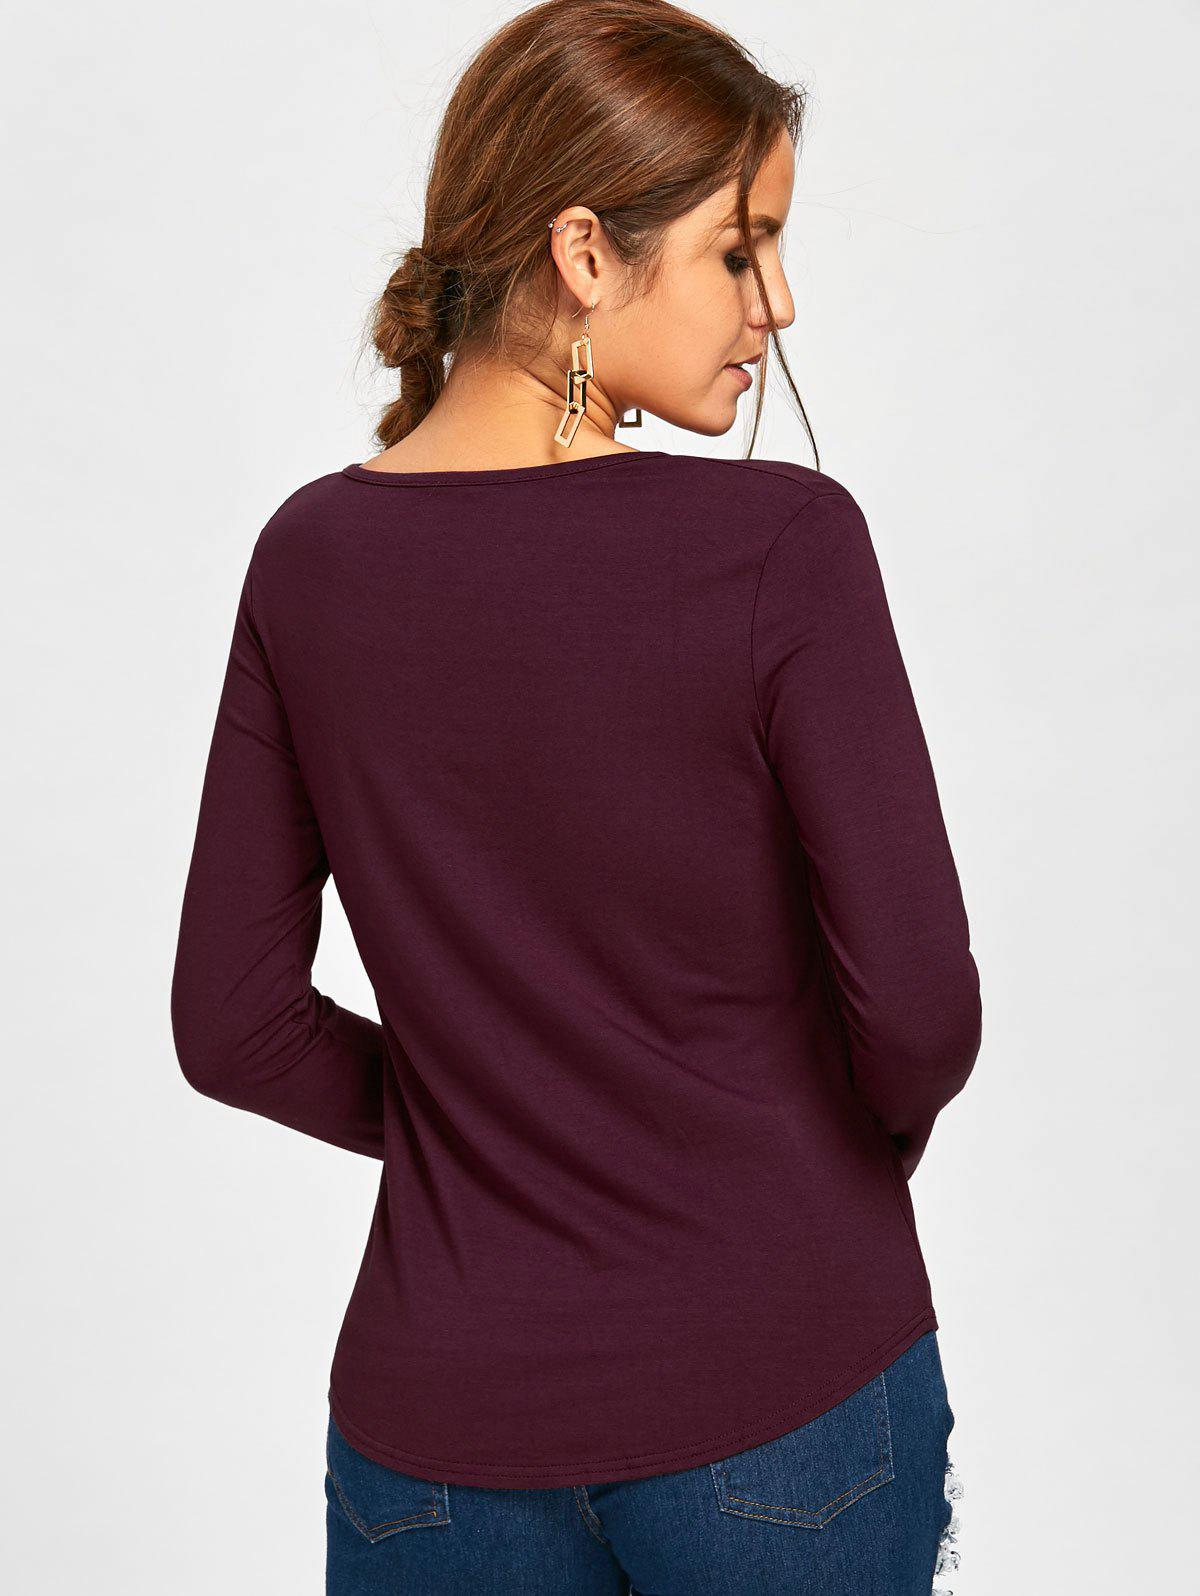 Plunge Lace Up Long Sleeve Tee - WINE RED L